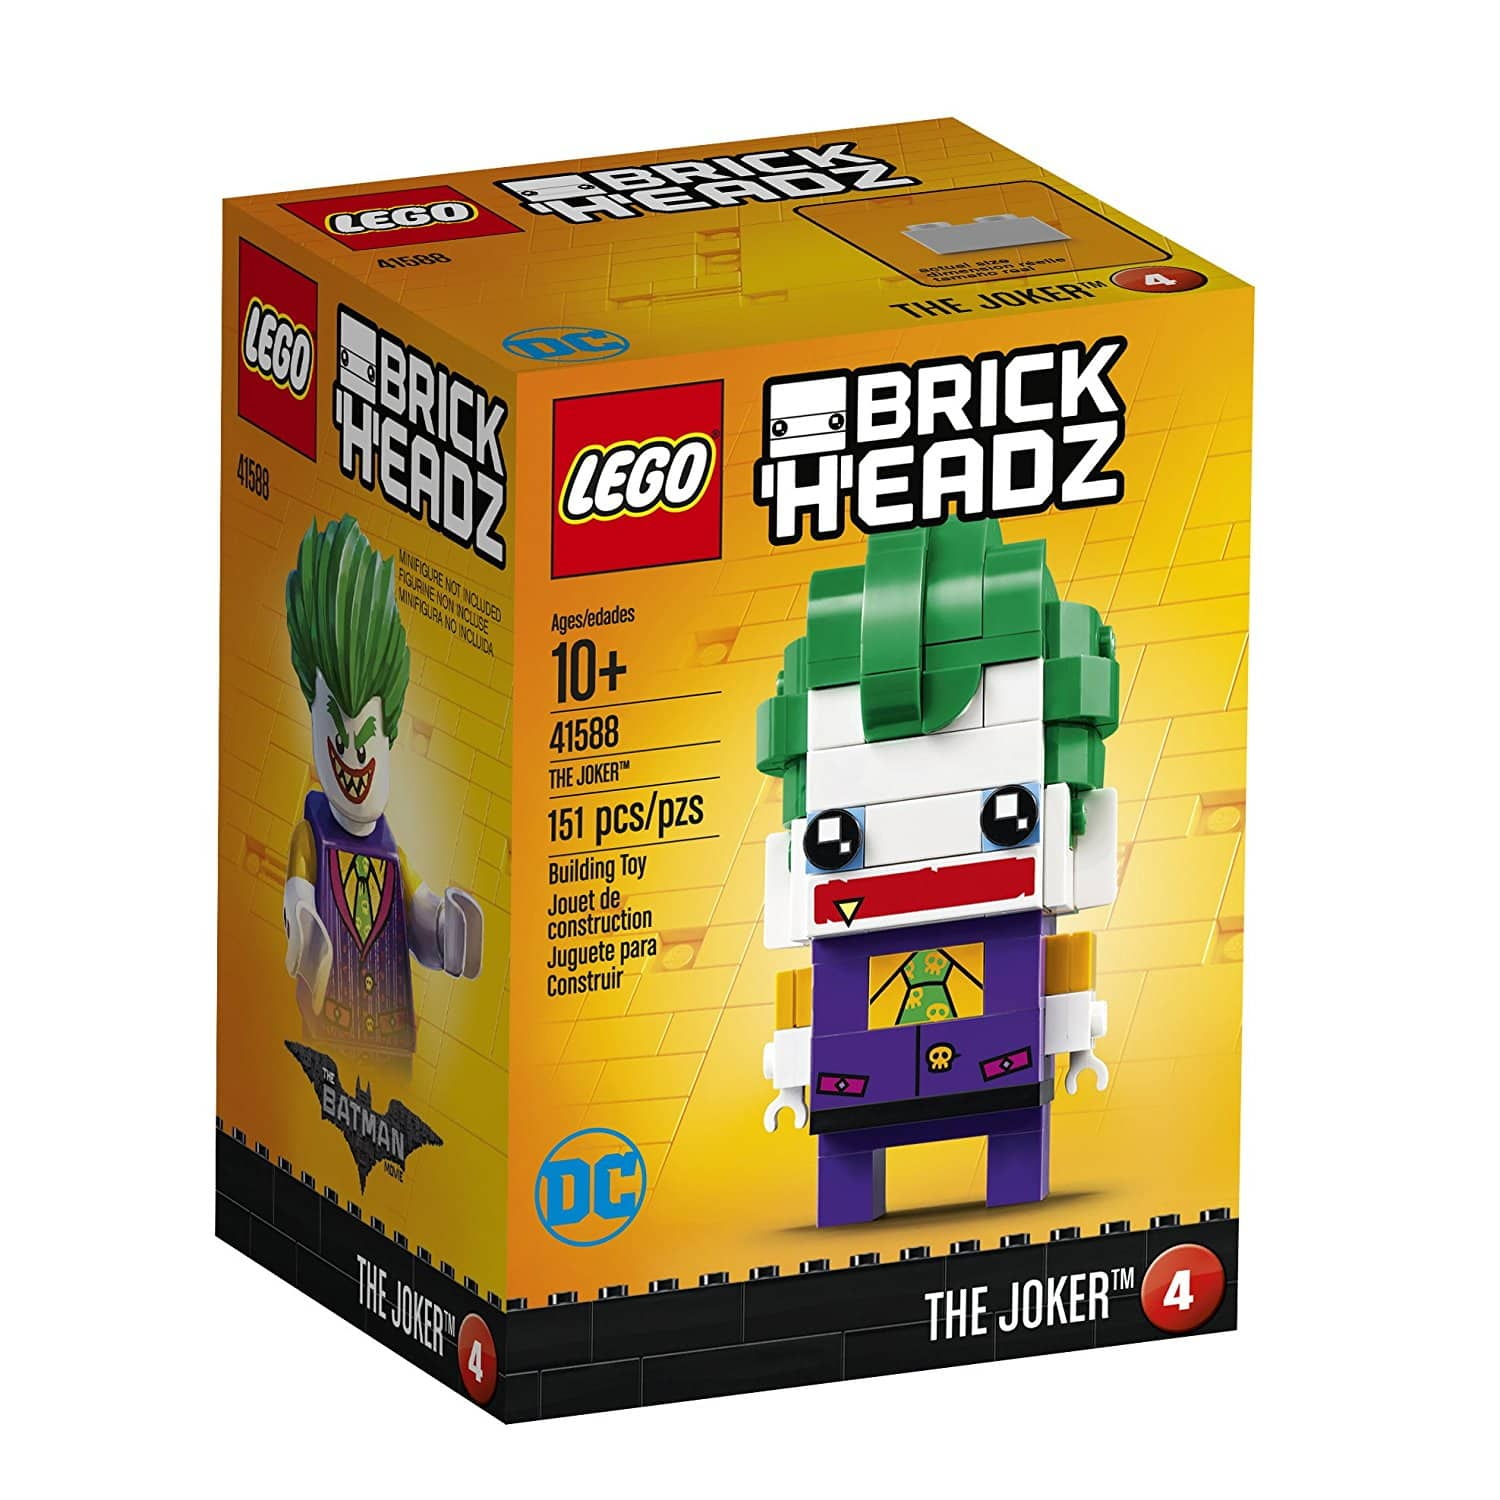 LEGO BrickHeadz The Joker 41588 - $5(50% off) @amazon as add-on item